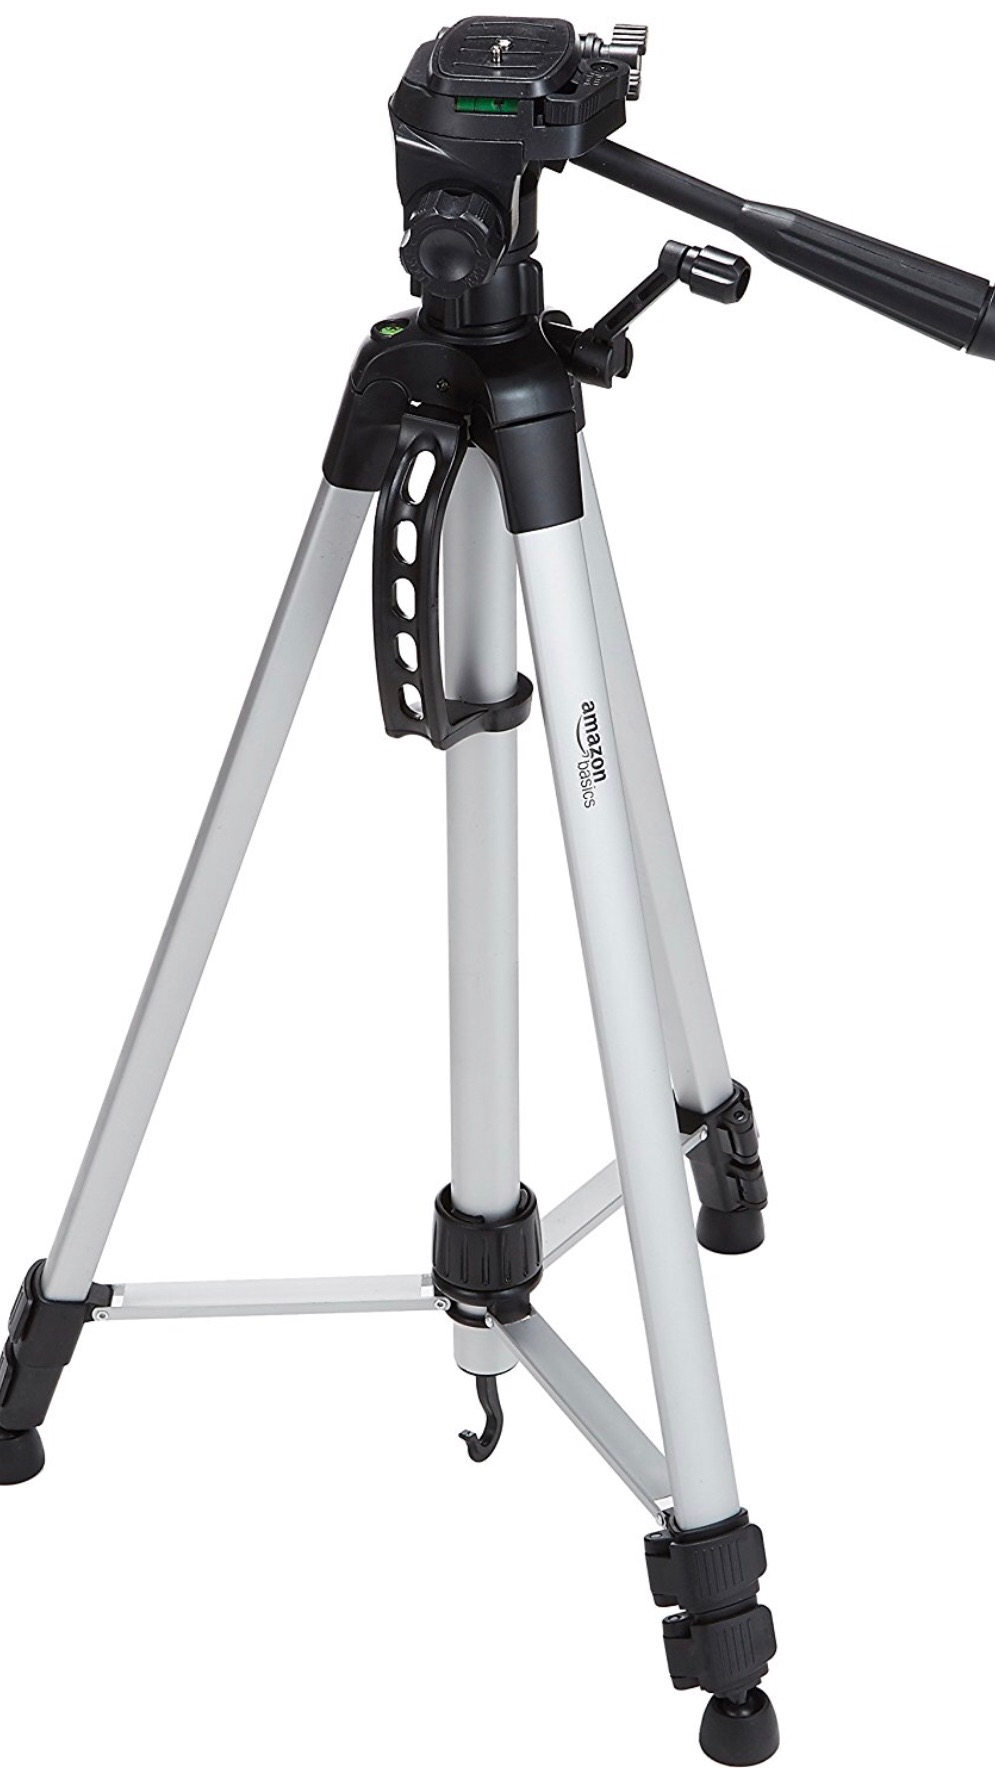 Tripod - Amazon Basics